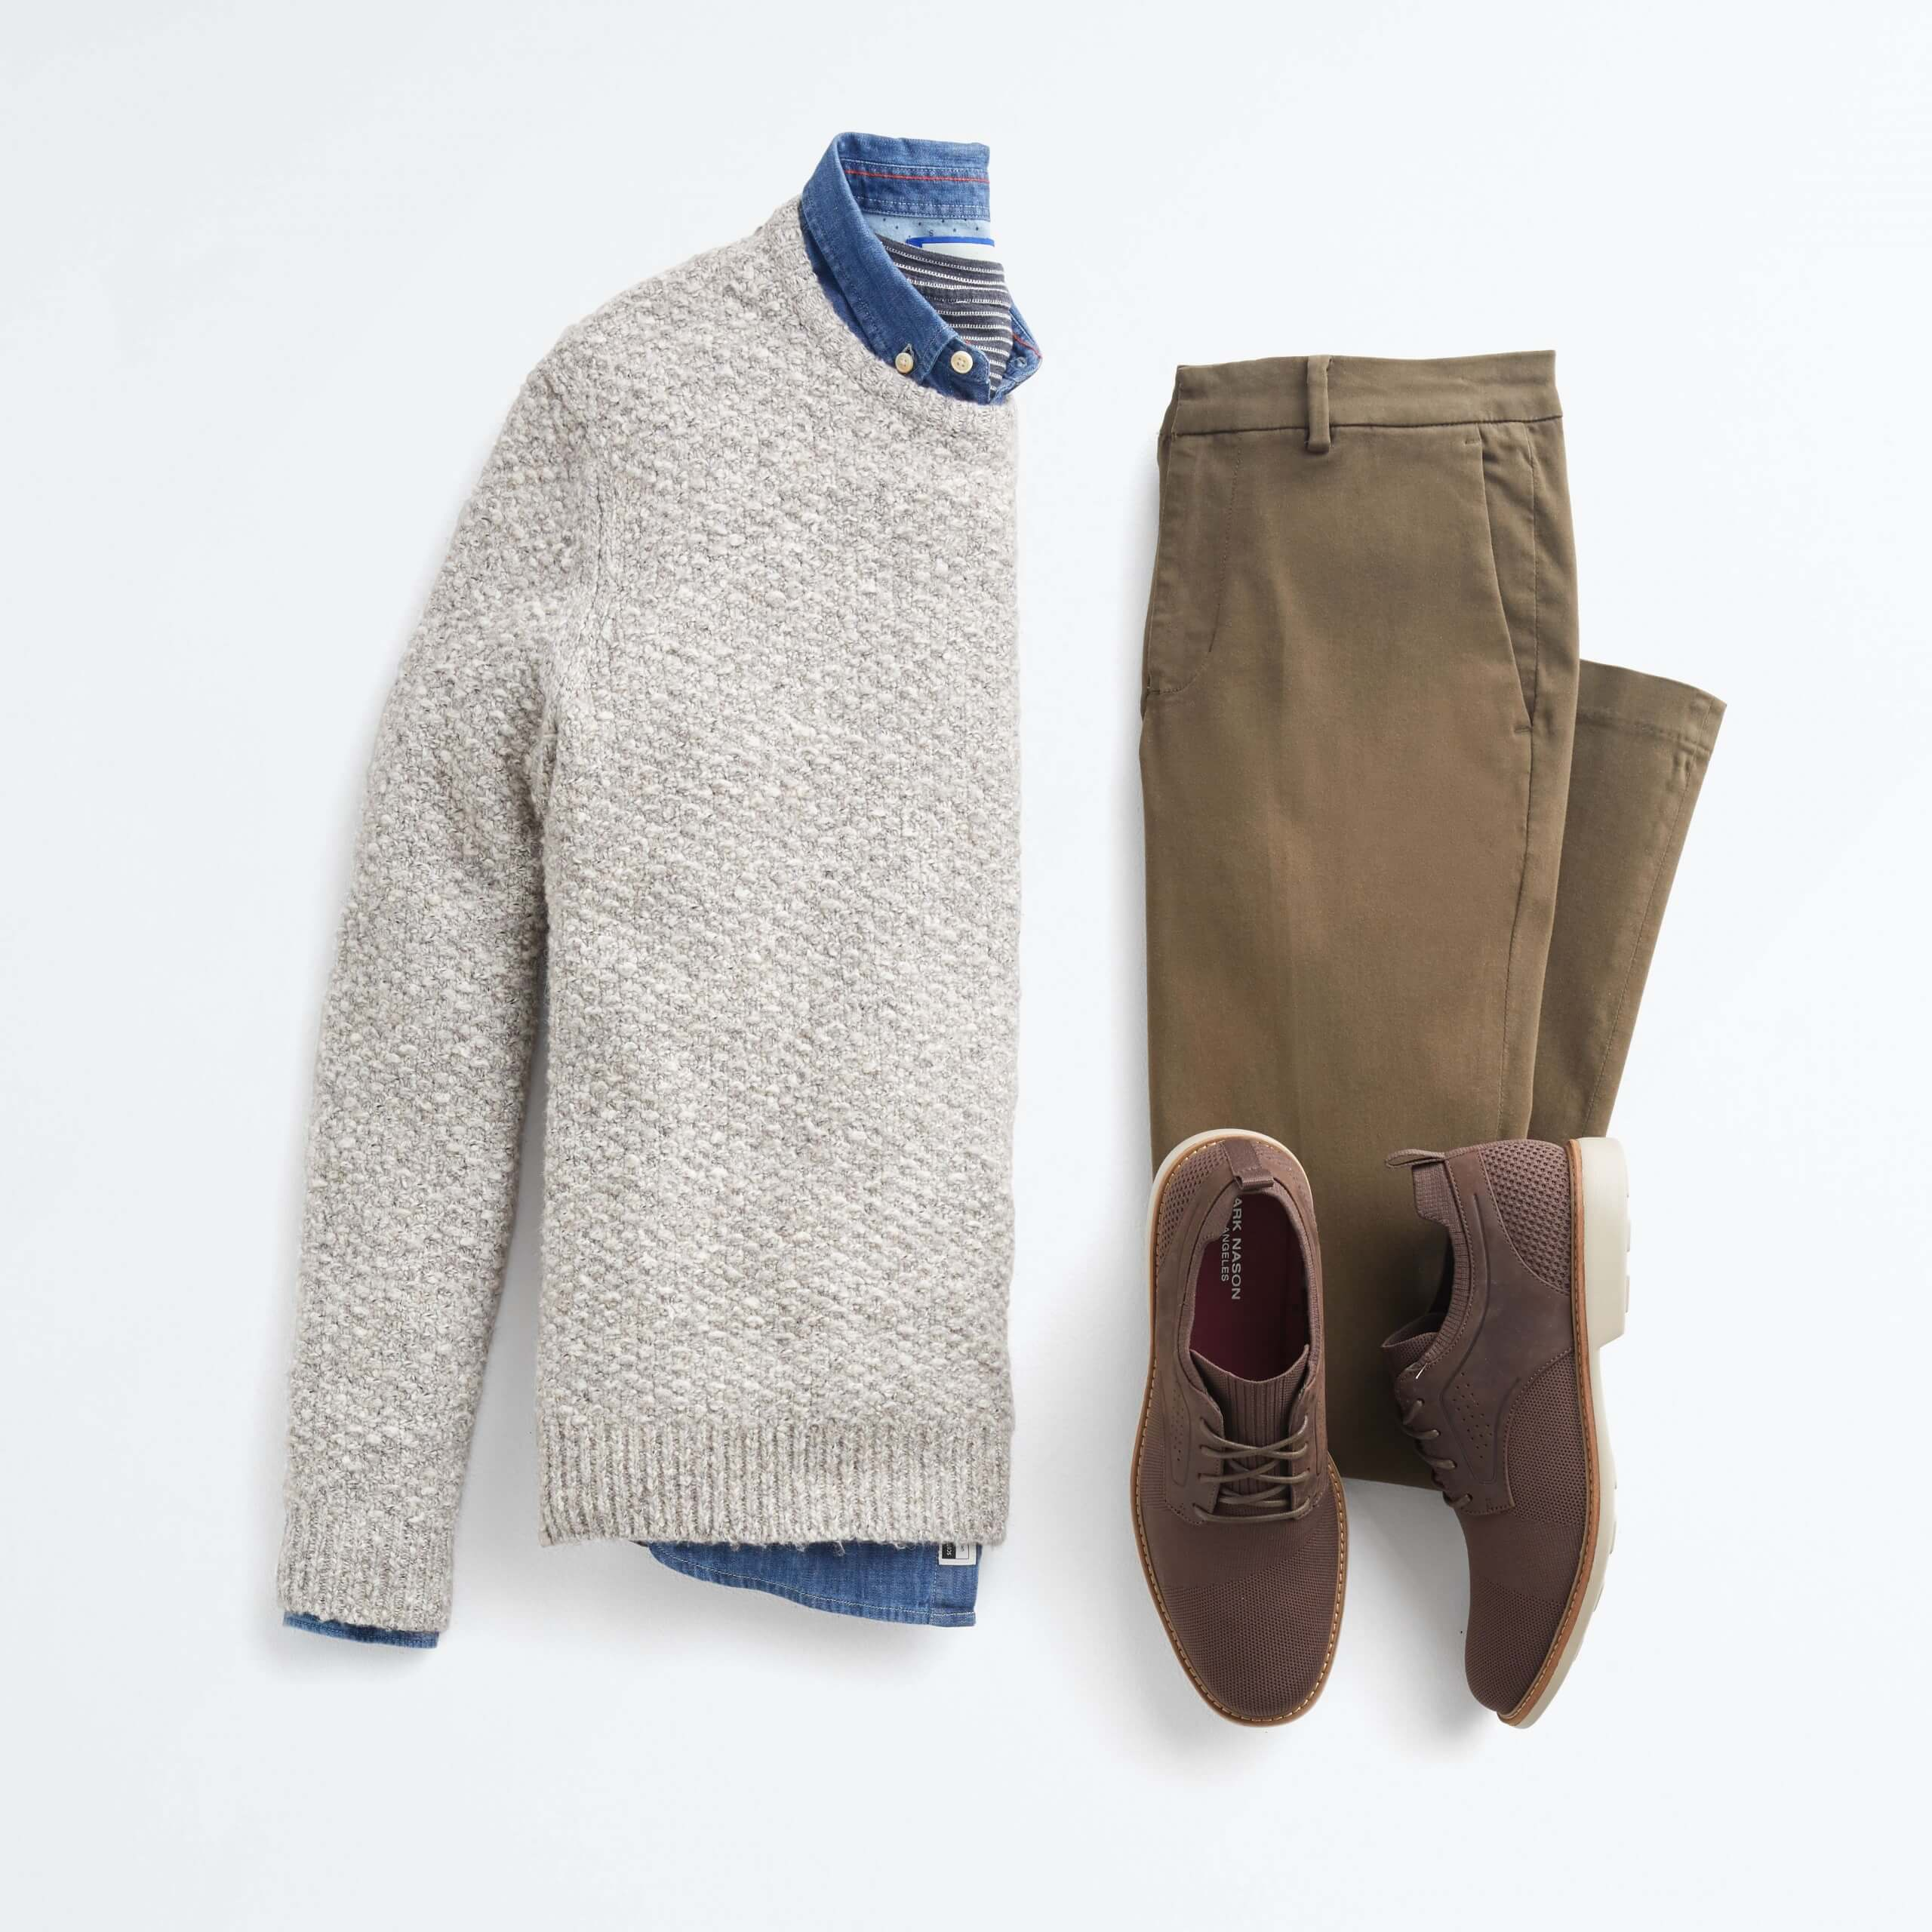 Stitch Fix Men's outfit laydown featuring beige sweater over blue collared-shirt, brown pants and brown shoes.